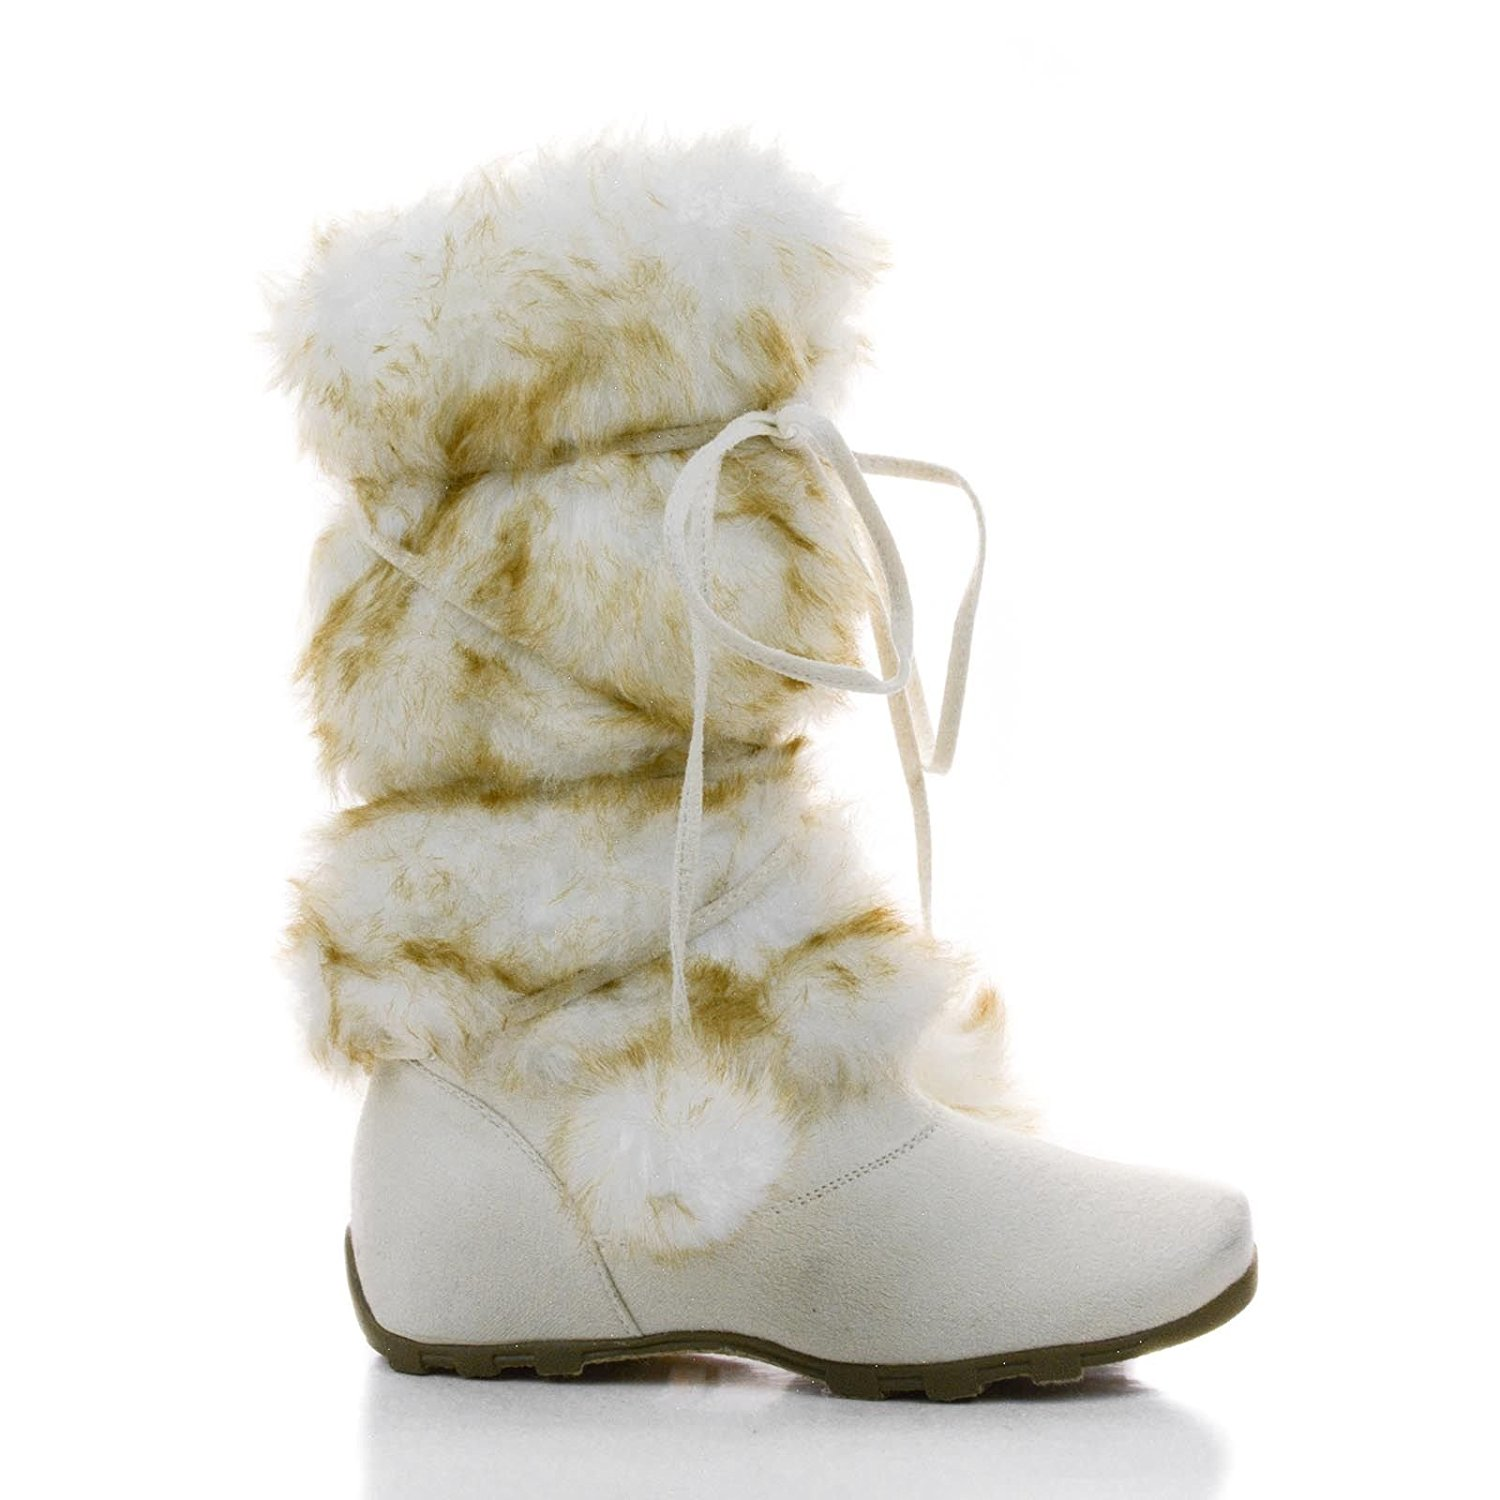 Cheap Canadian Mukluk Boots, find Canadian Mukluk Boots